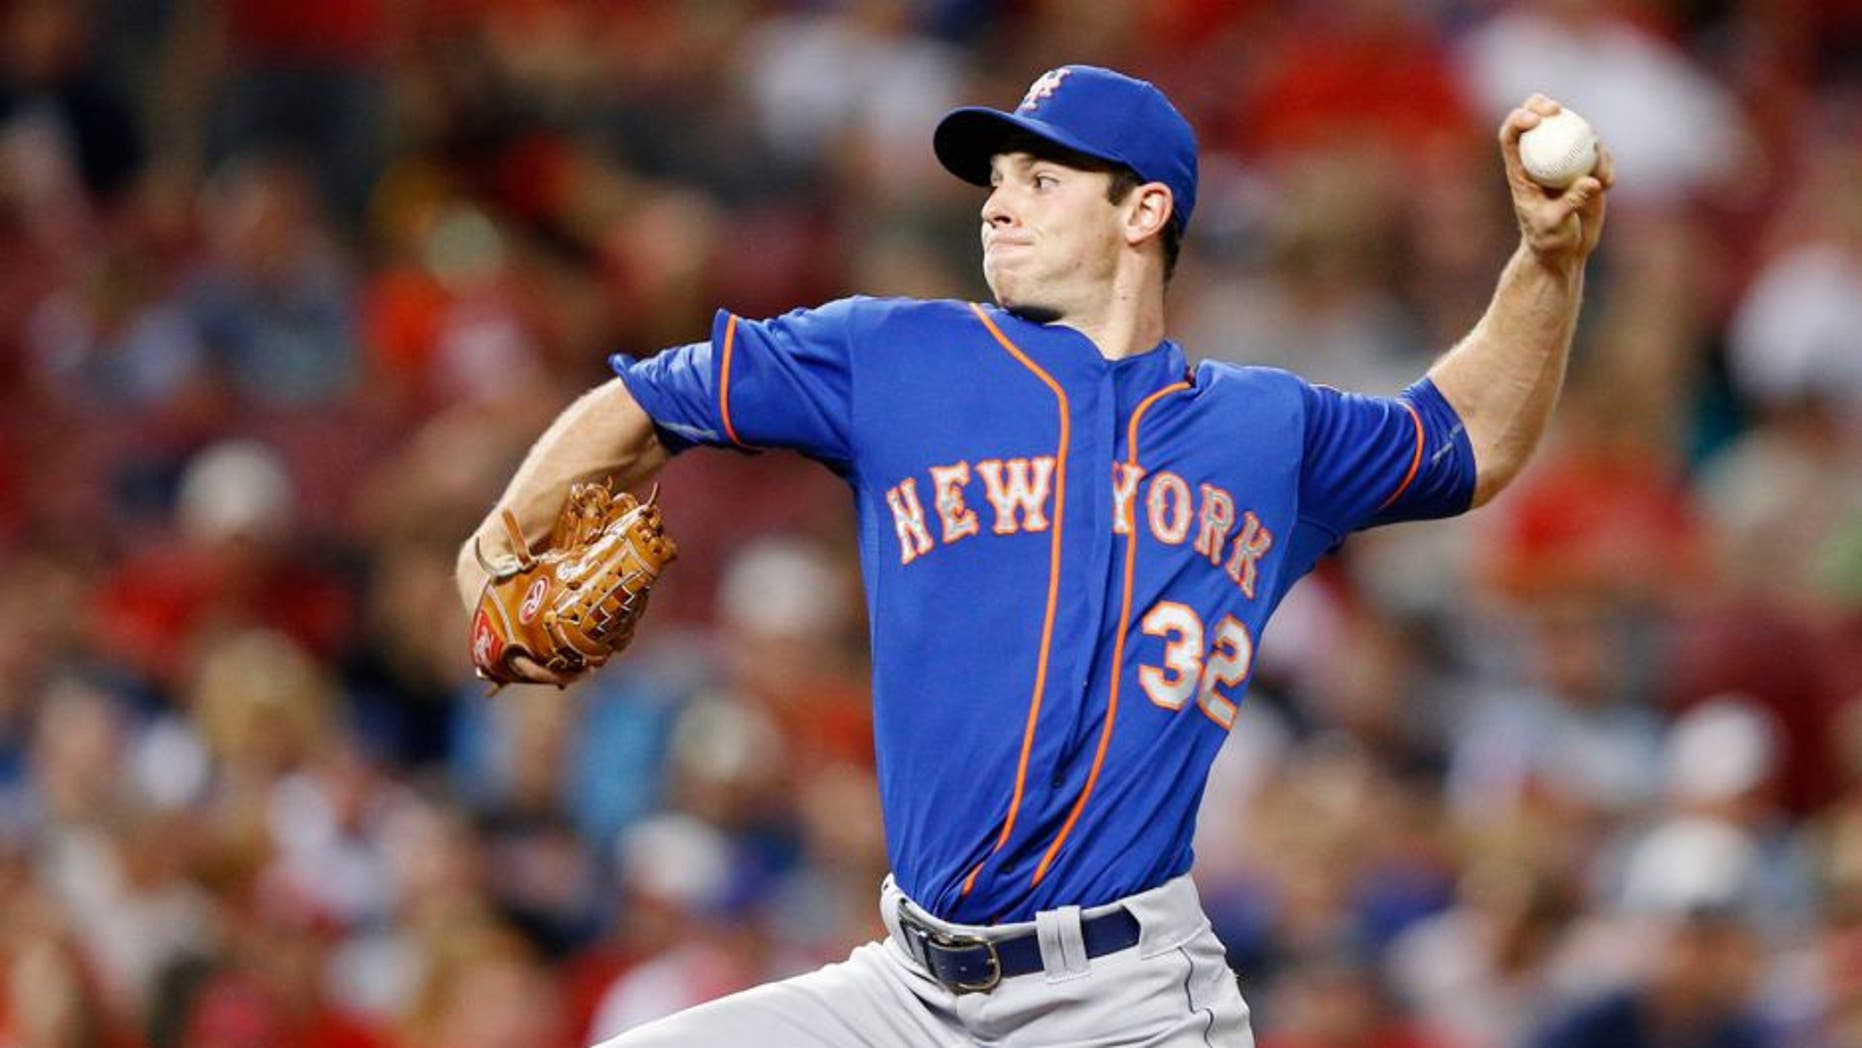 CINCINNATI, OH - SEPTEMBER 24: Steven Matz #32 of the New York Mets pitches in the third inning against the Cincinnati Reds at Great American Ball Park on September 24, 2015 in Cincinnati, Ohio. (Photo by Joe Robbins/Getty Images)